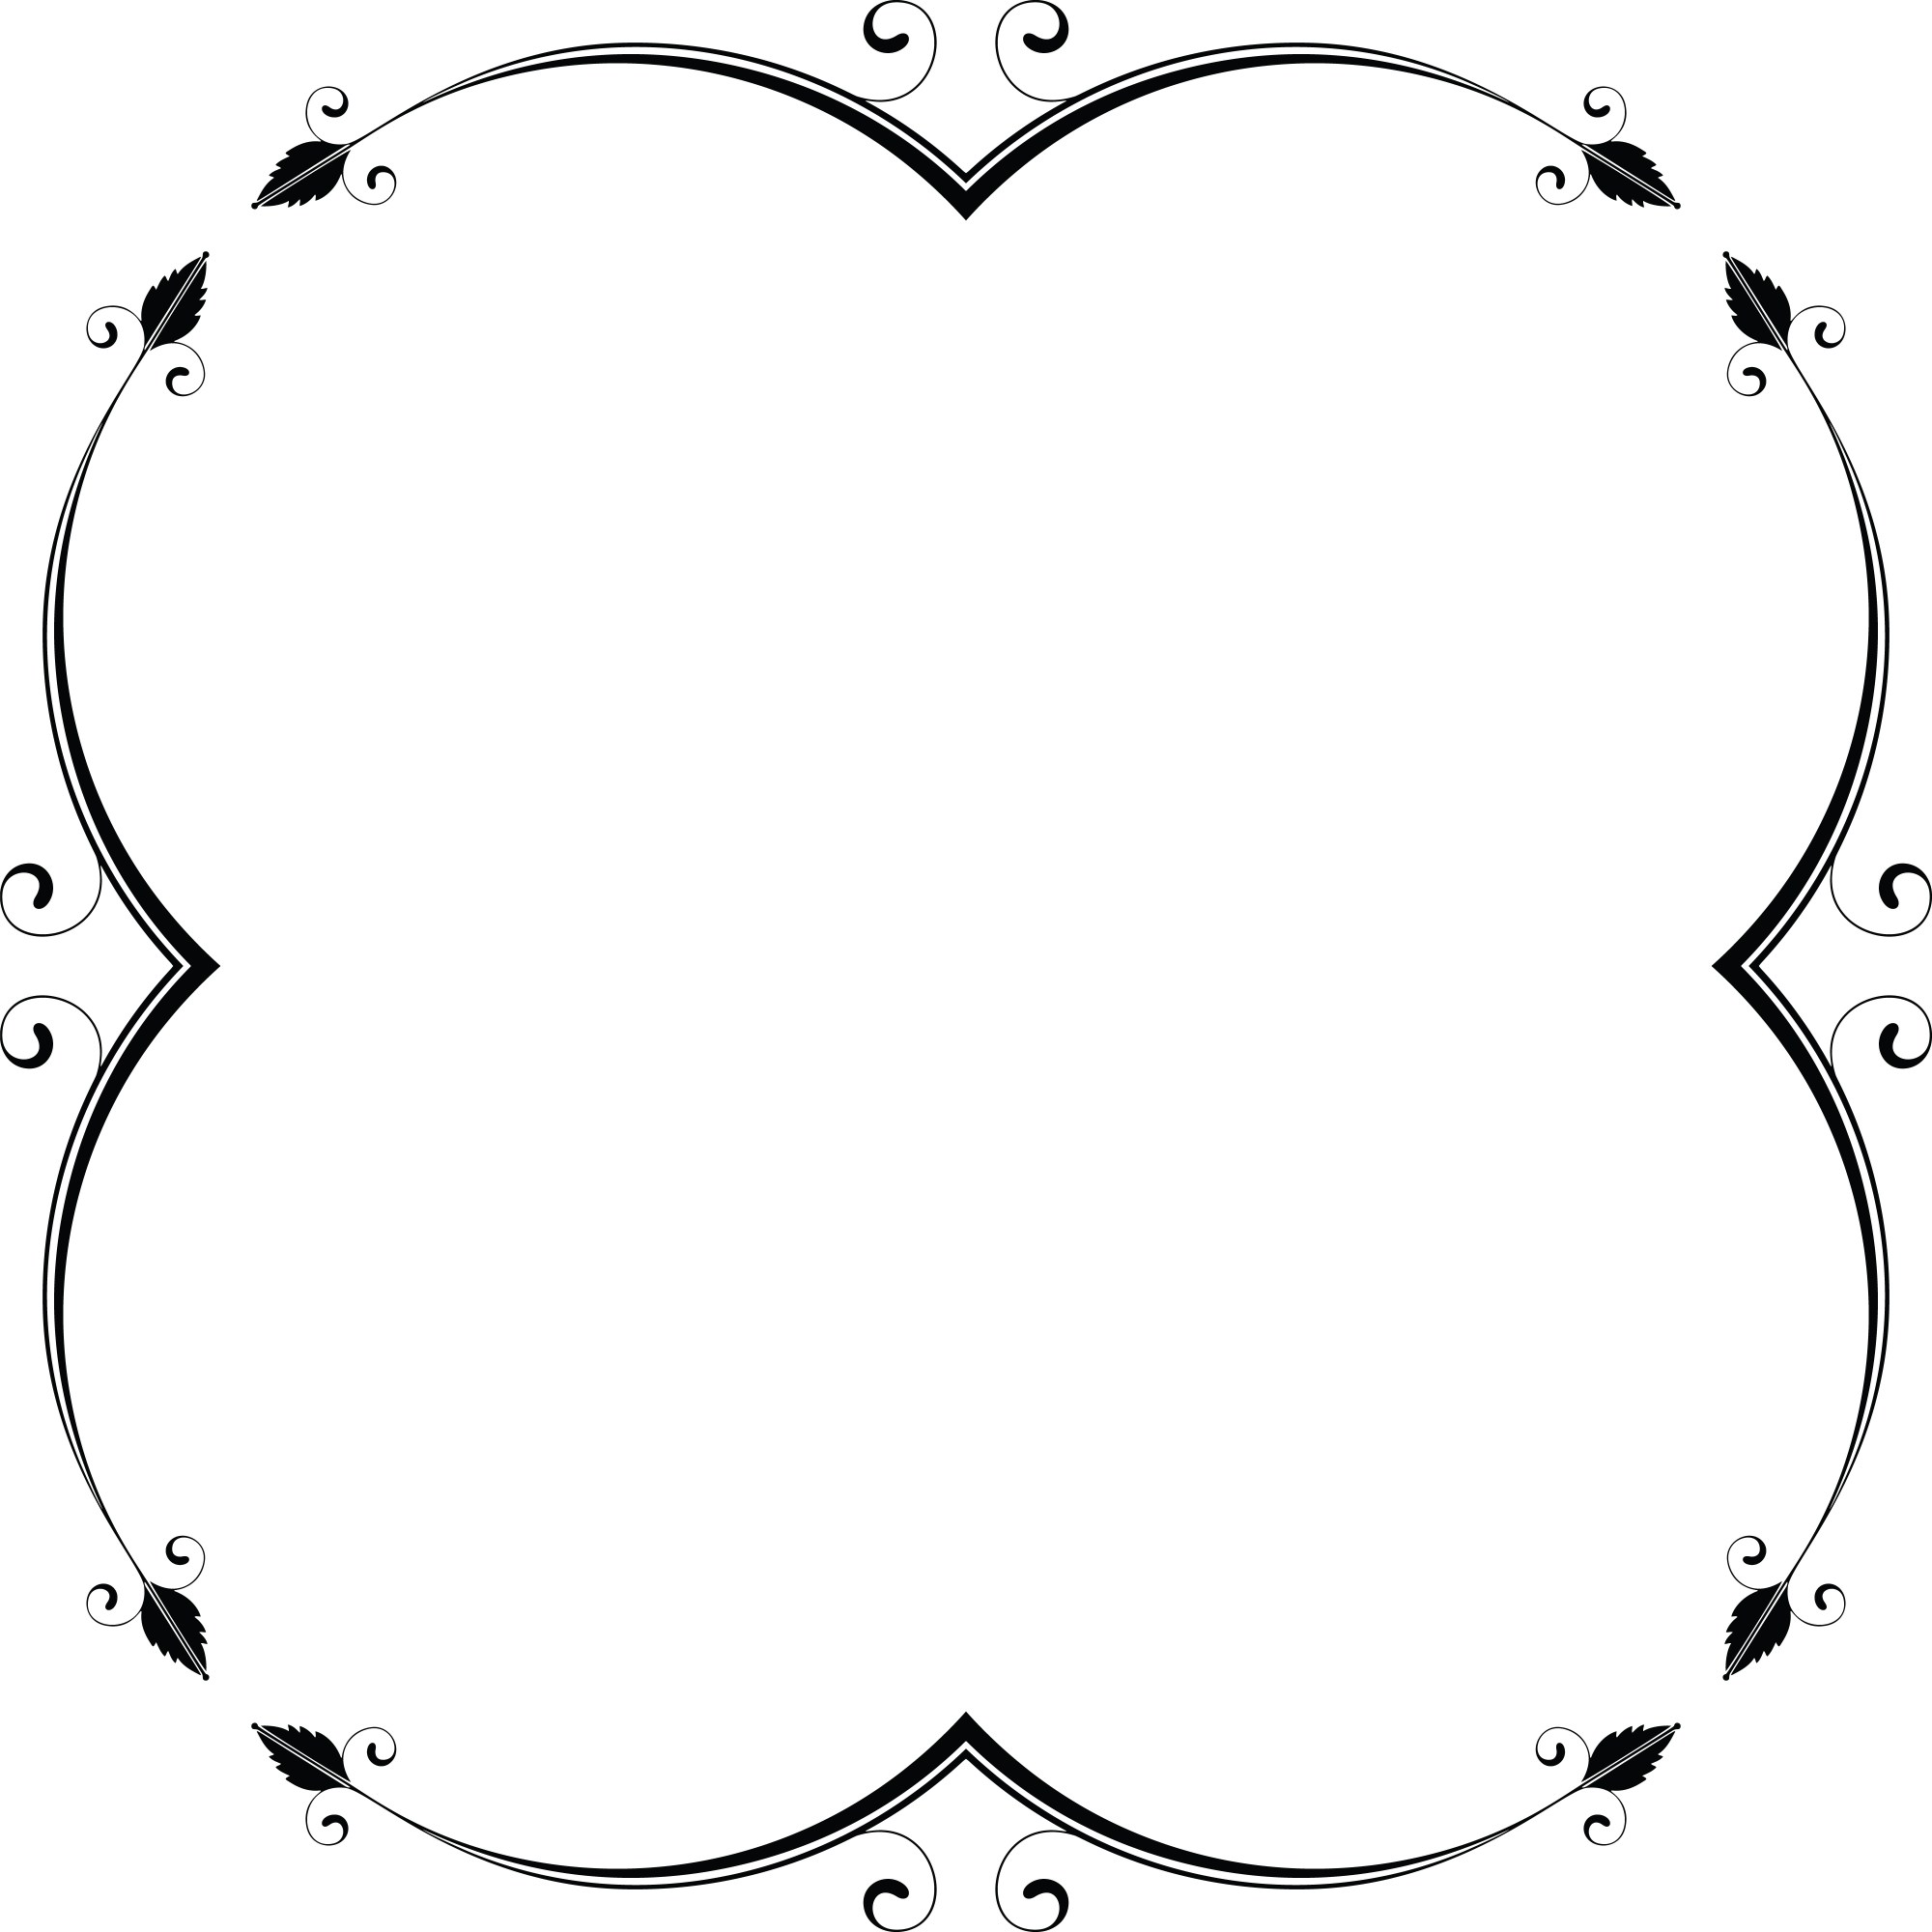 hight resolution of free clipart of a frame design element 00012047